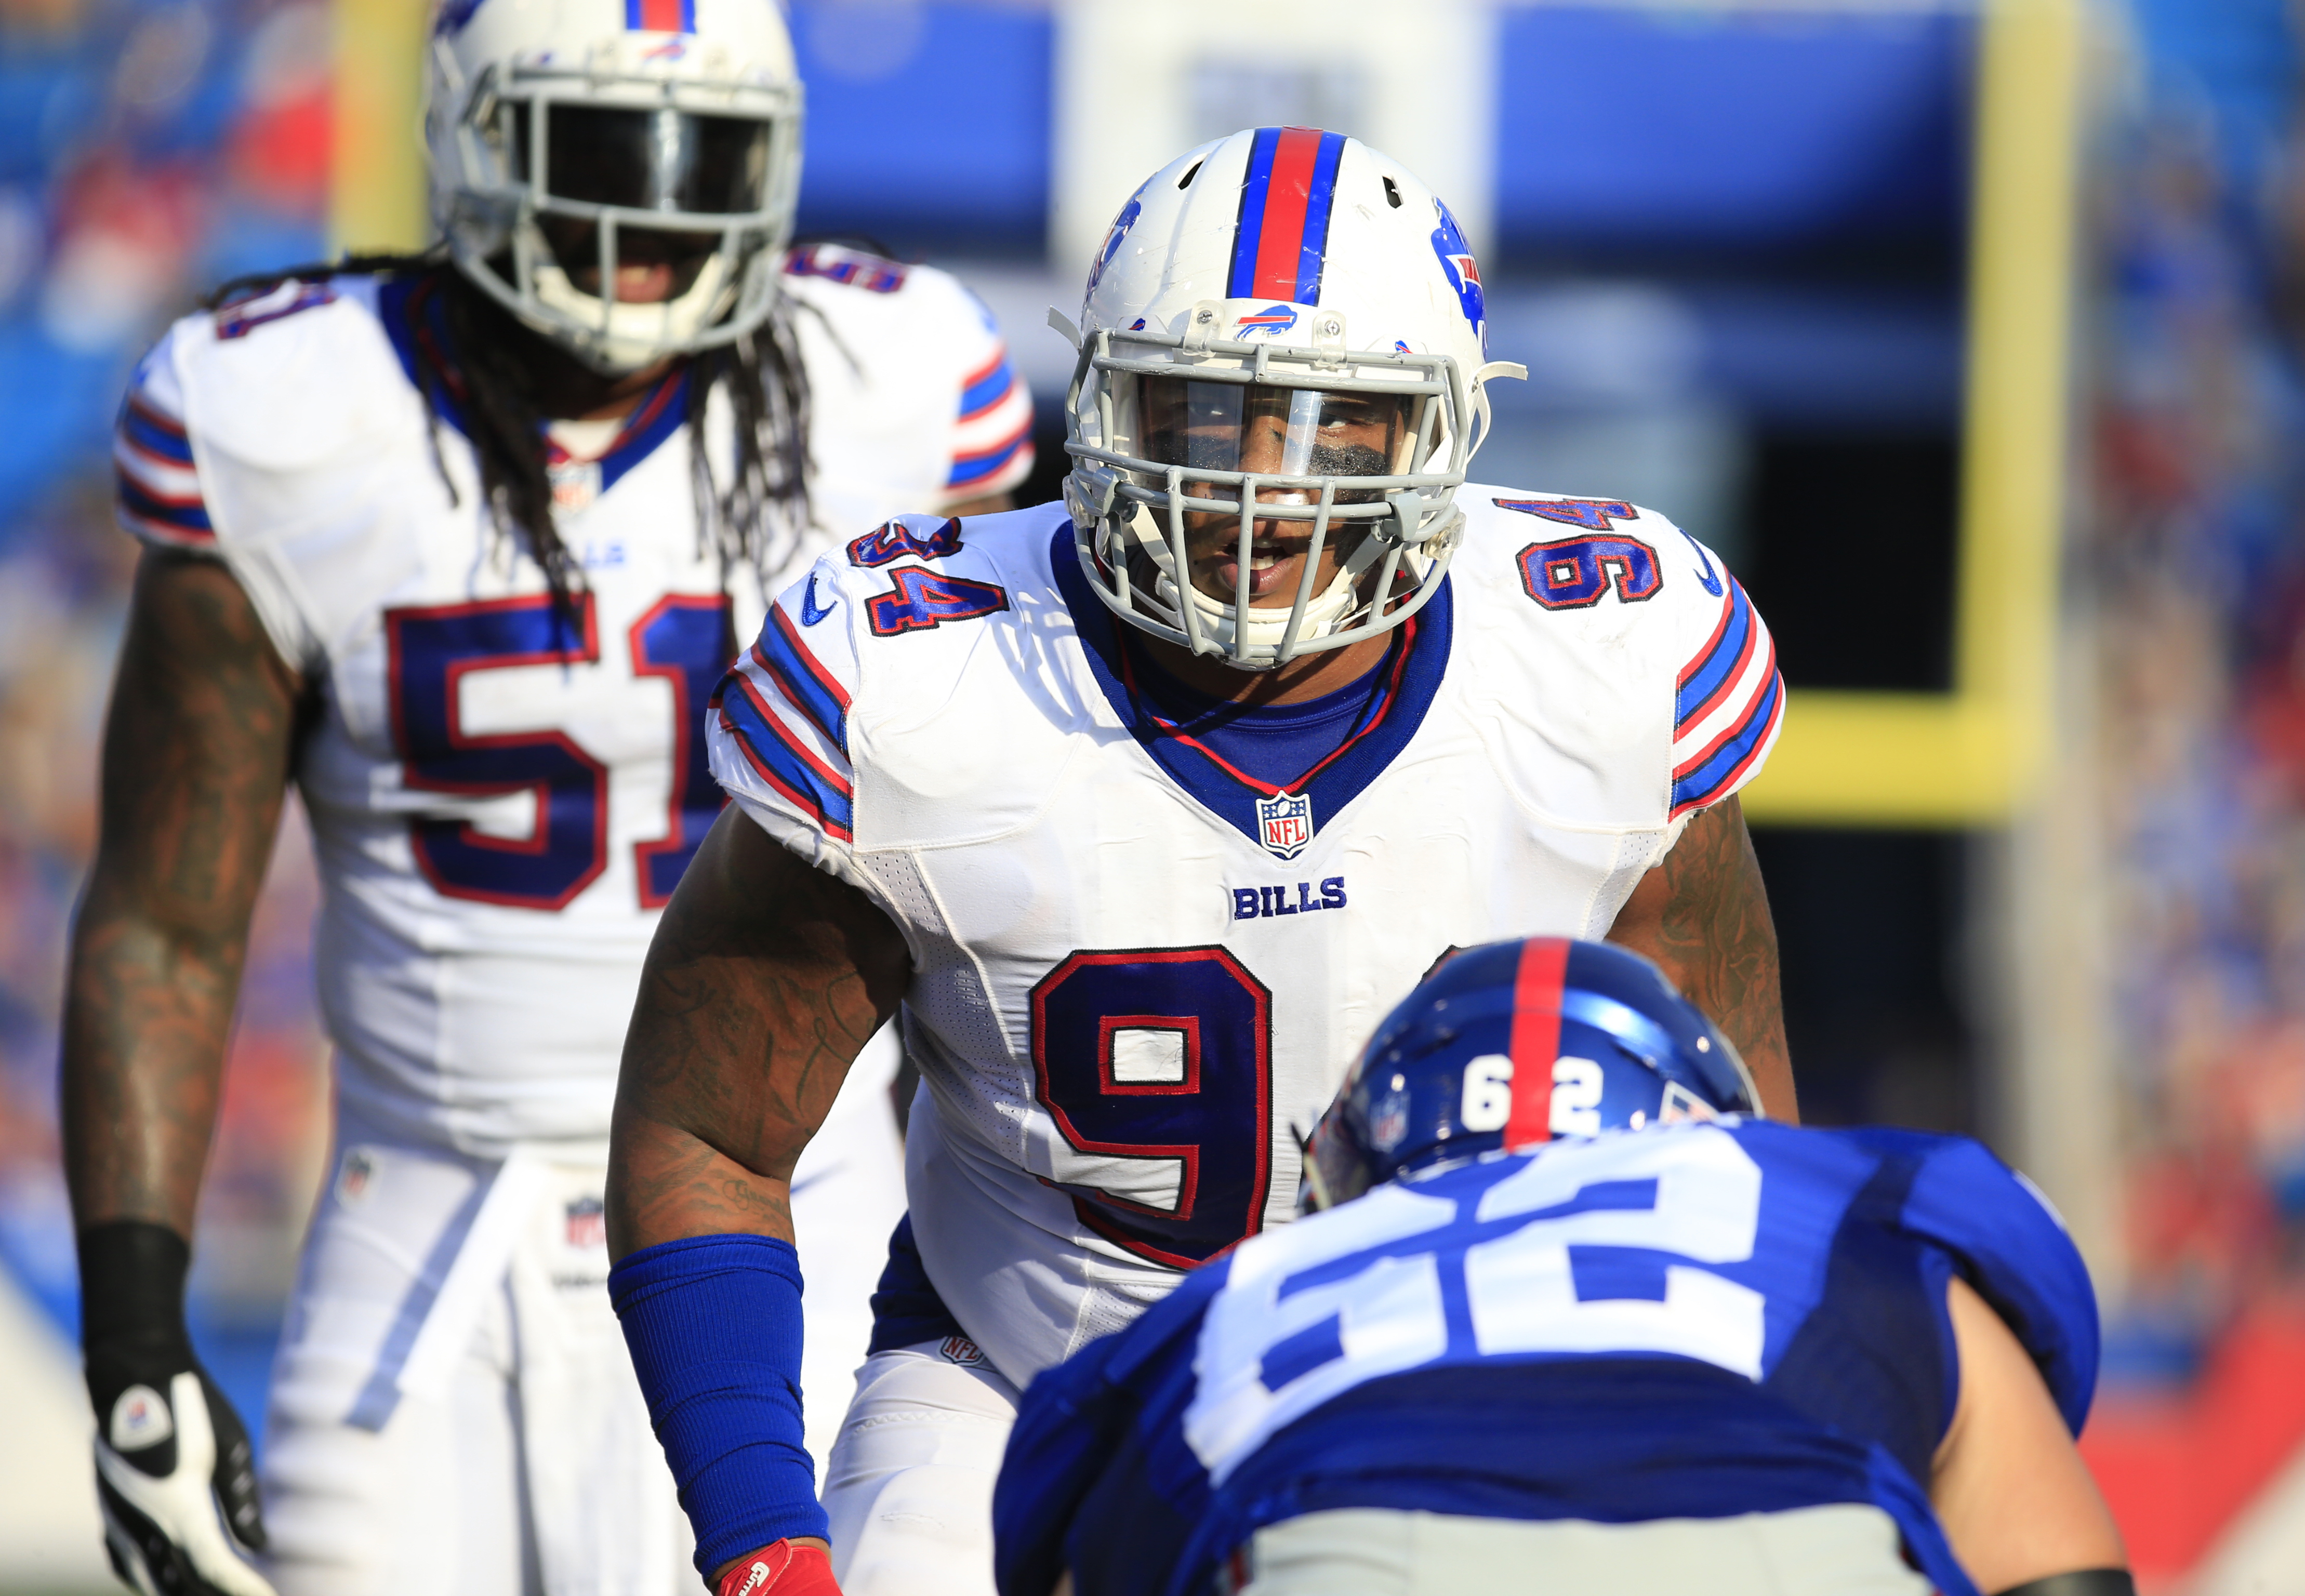 Jerel Worthy had one of his better games in the Bills' loss at Seattle. (Harry Scull Jr./Buffalo News)